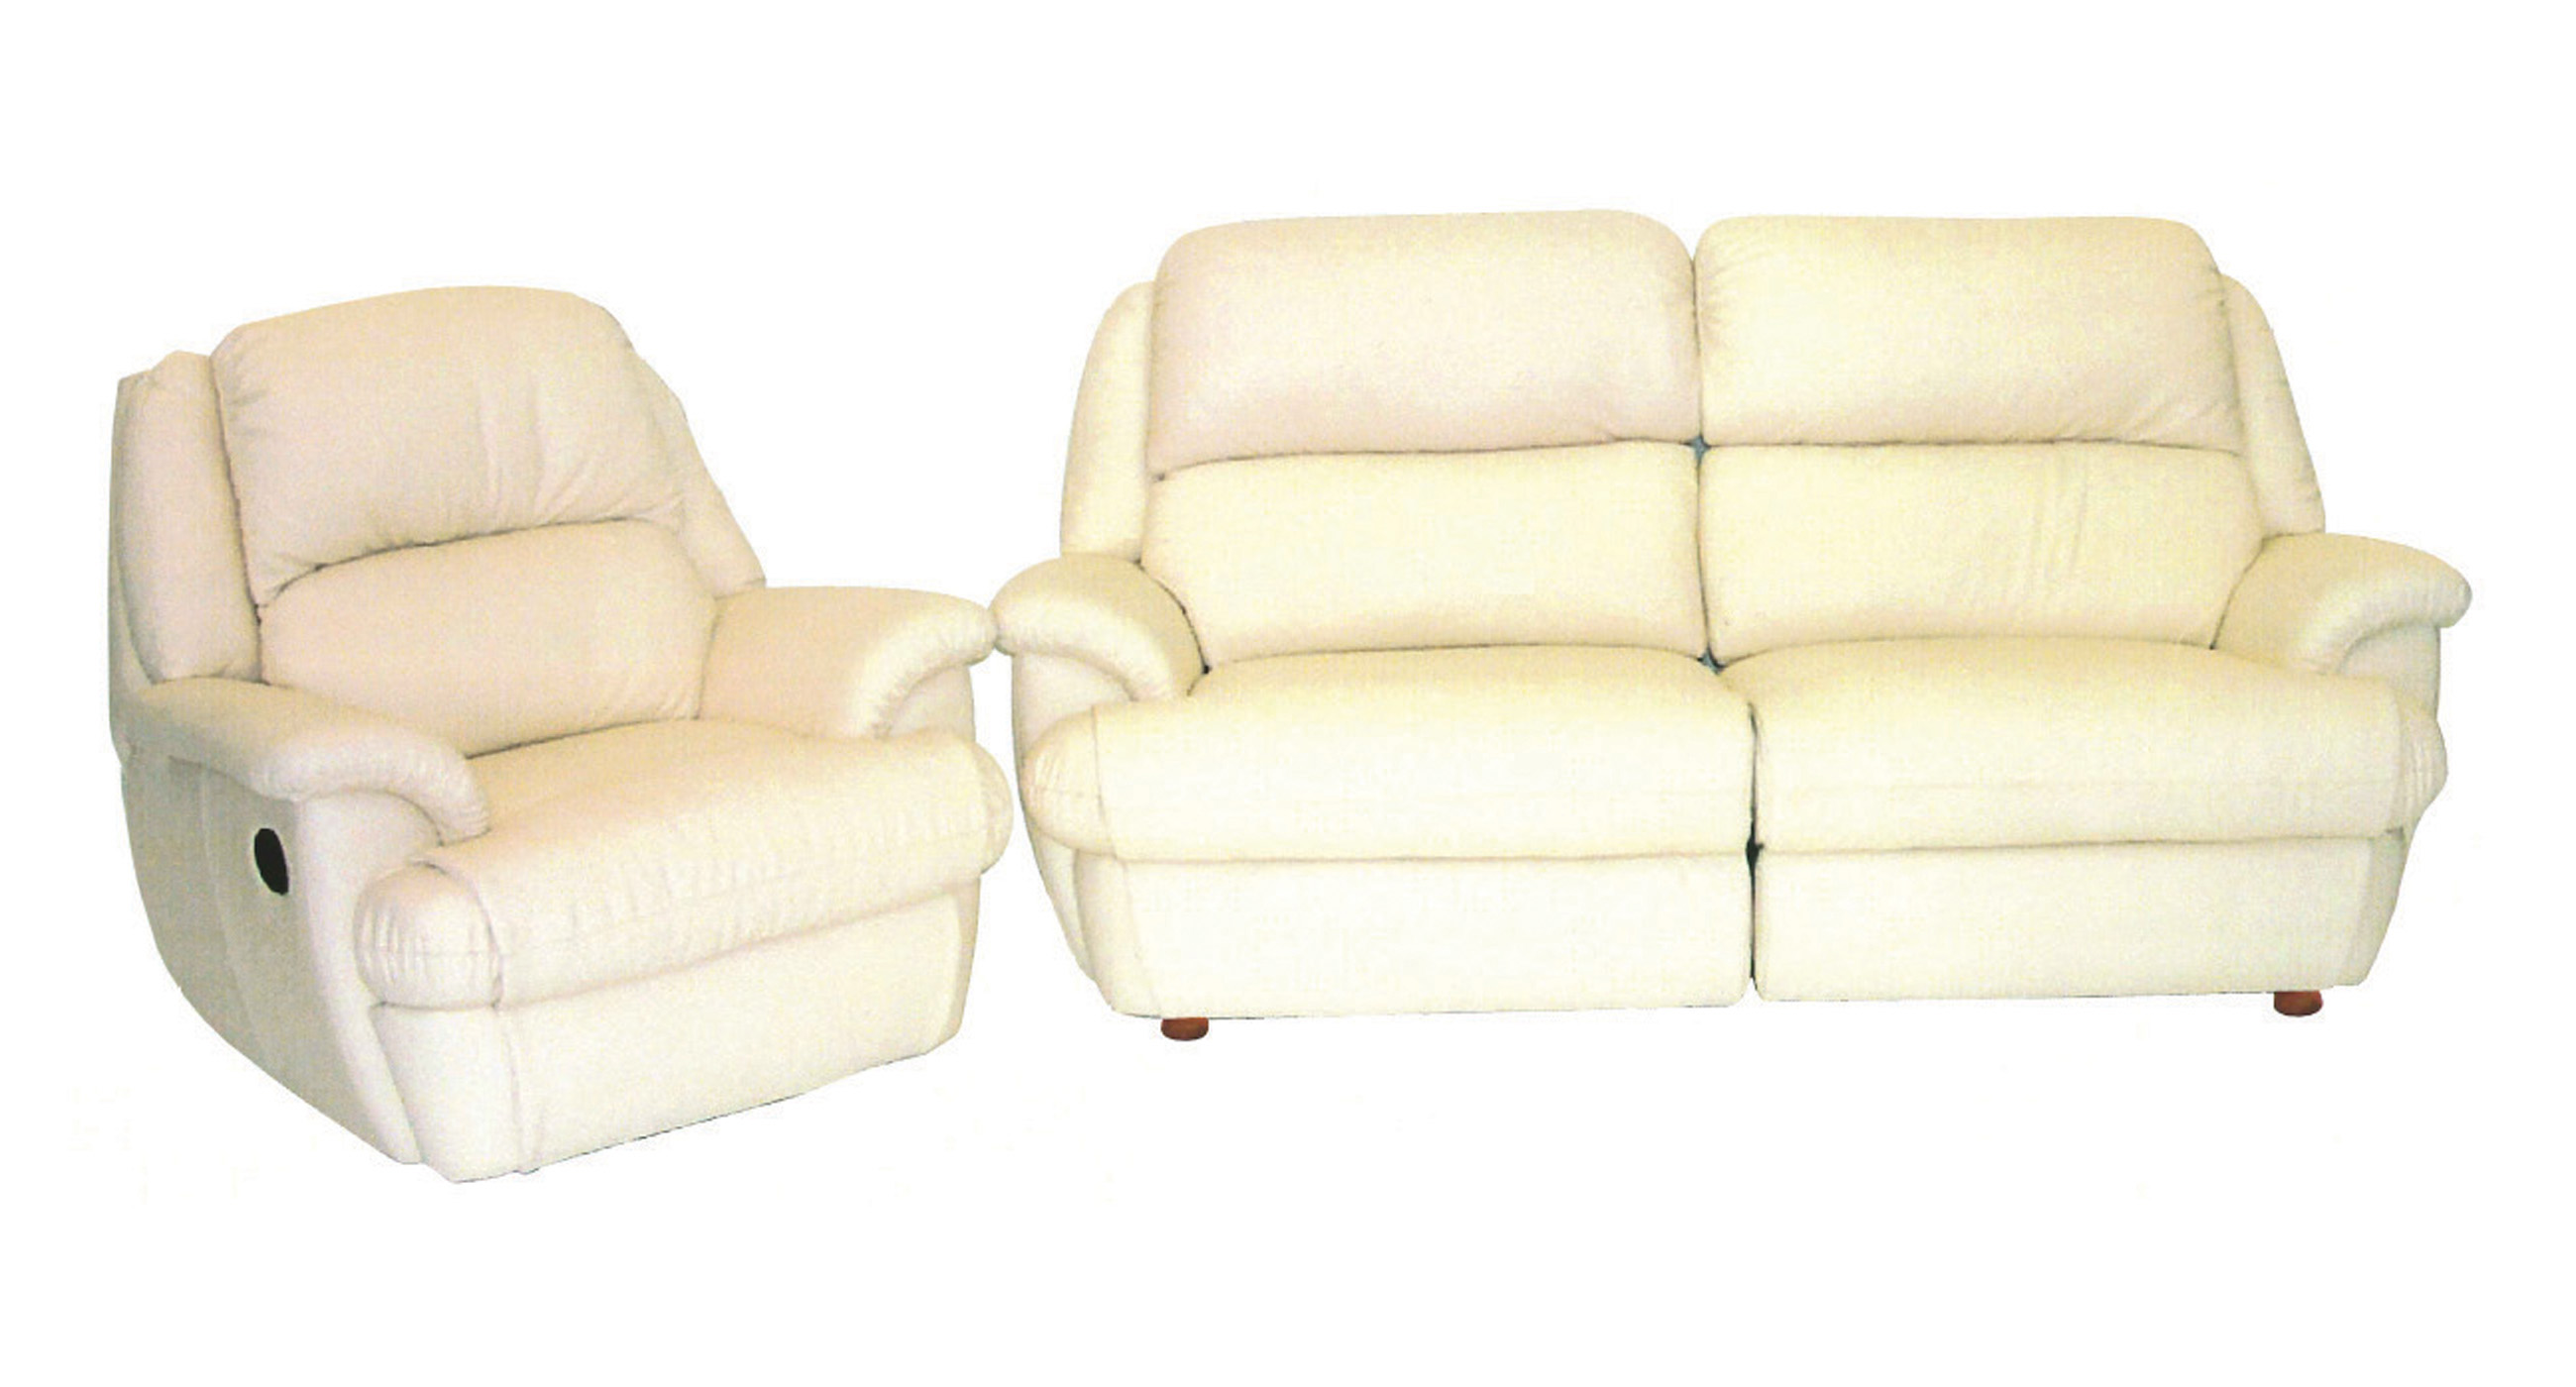 Strathmore Reclining Sofa and Chairs